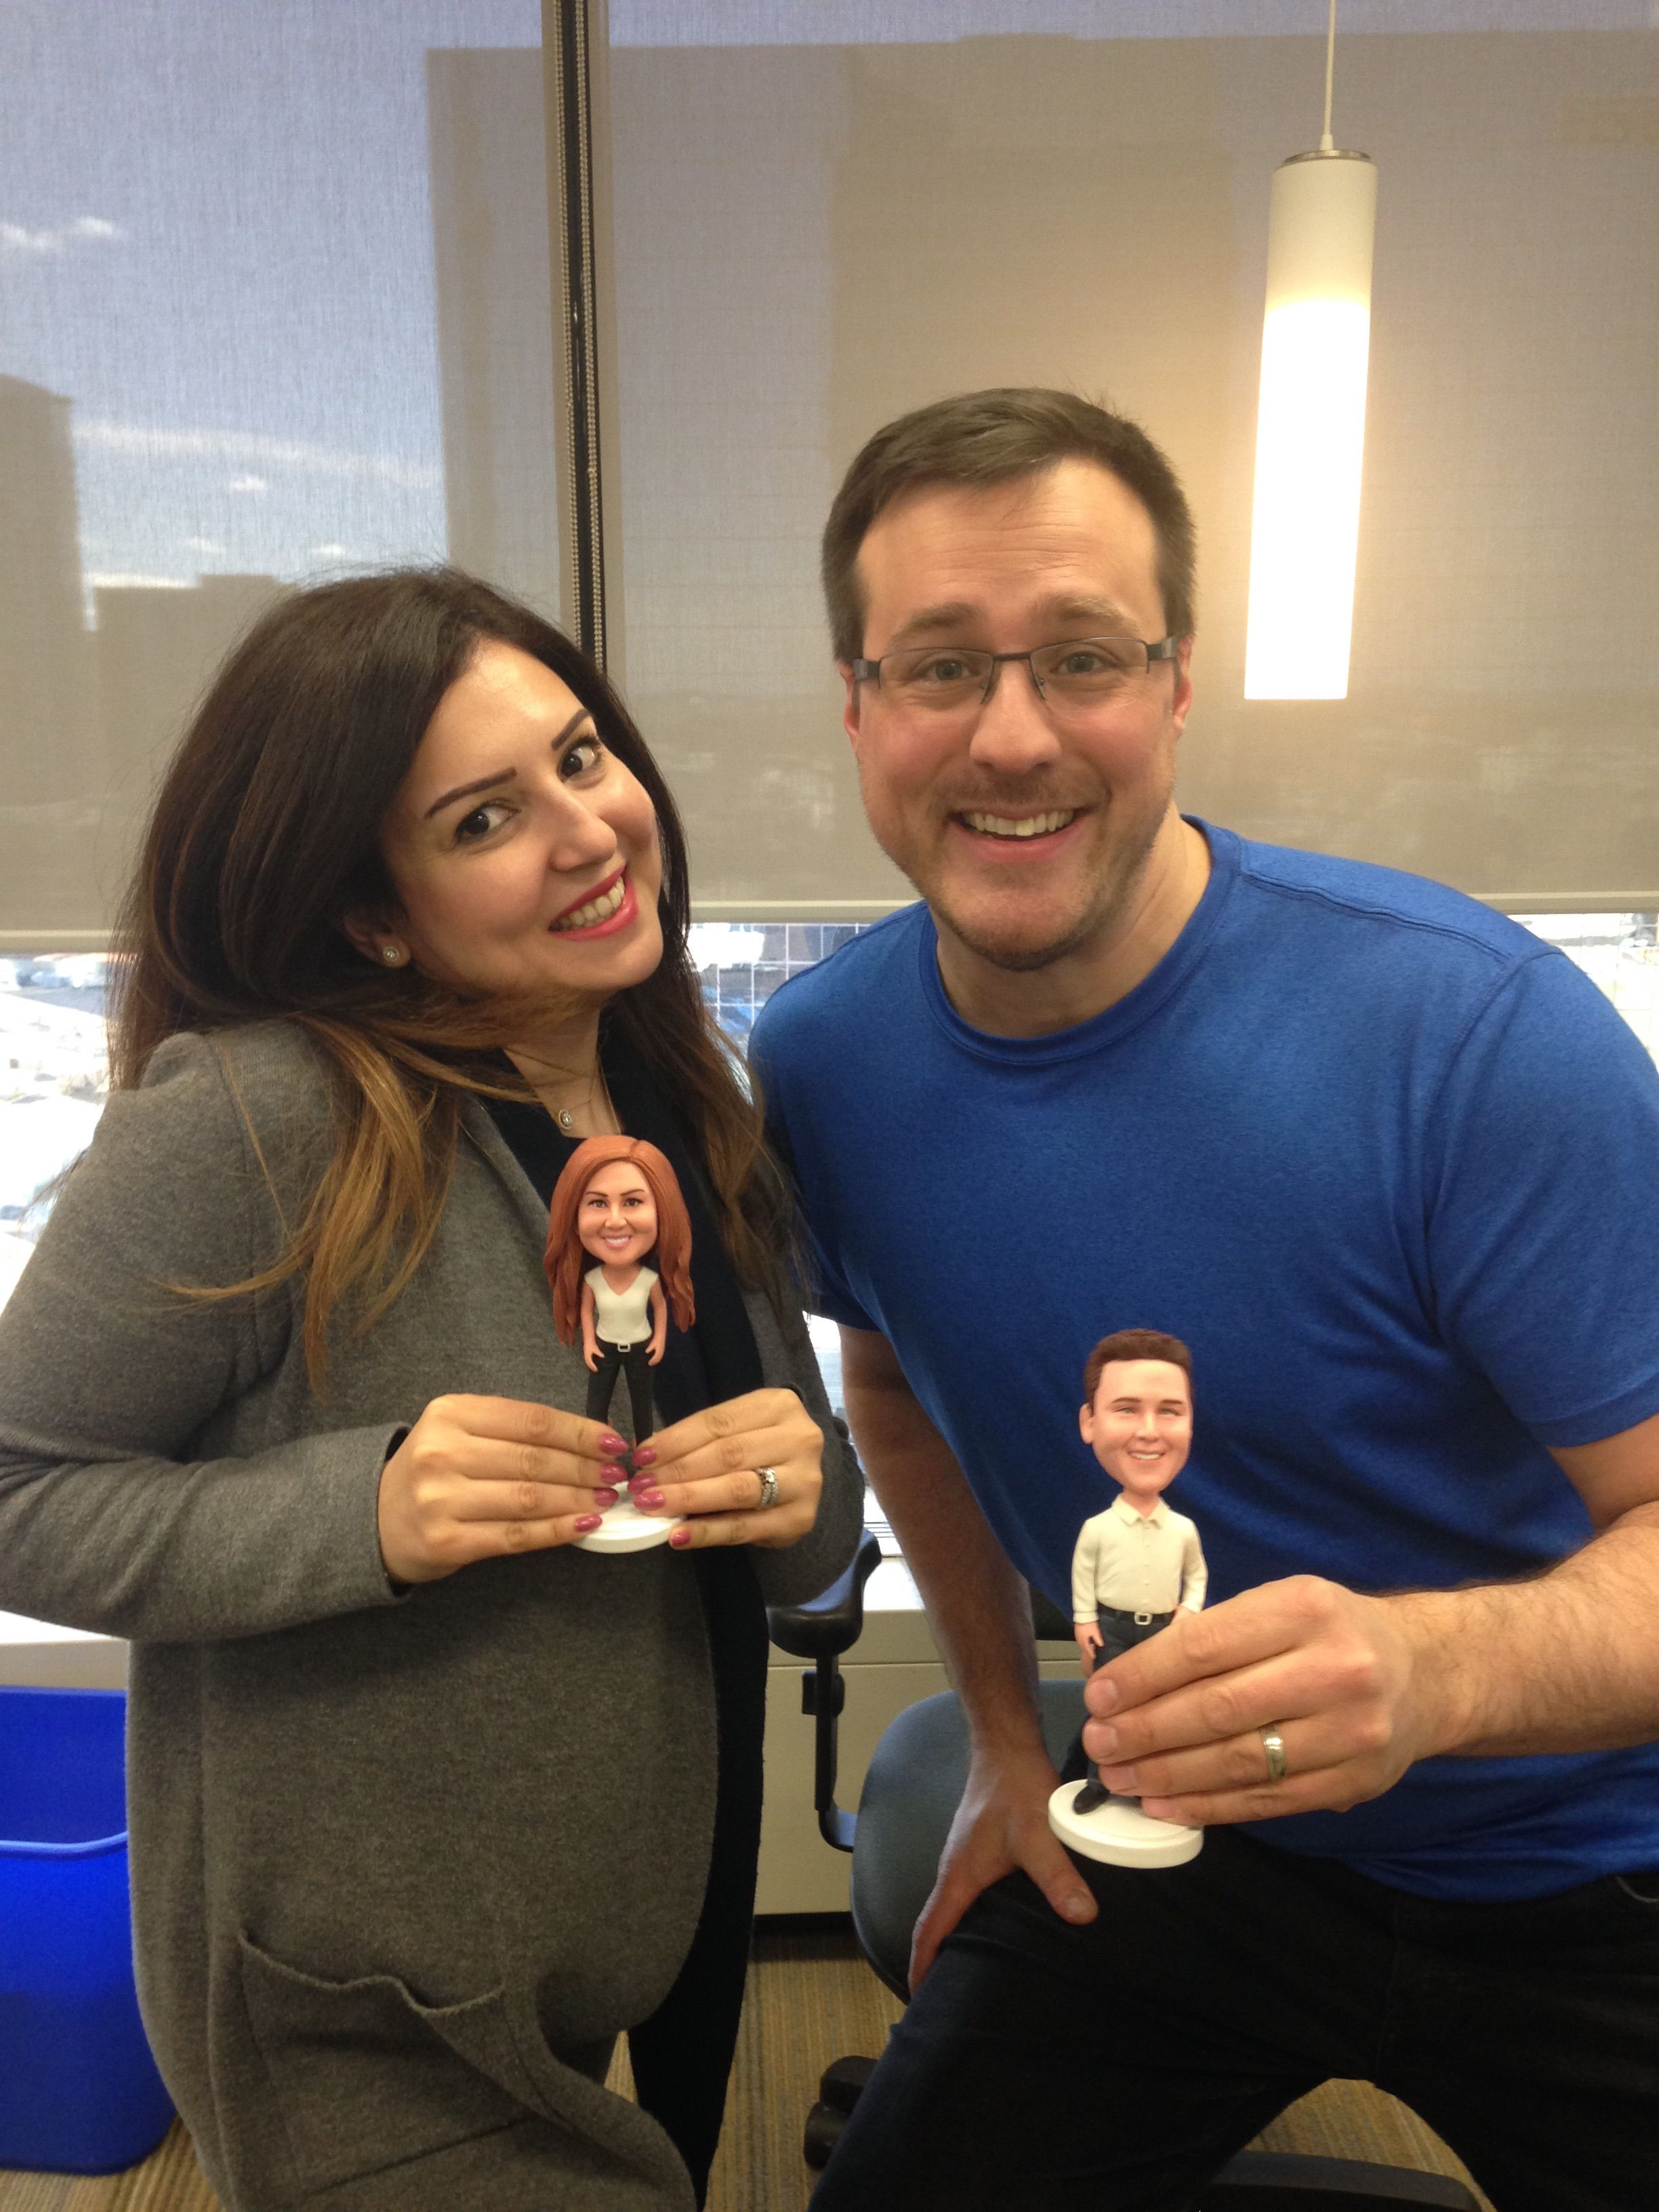 Winners of our Social Butte:Rfly contest Jeff Sieben and Sara Harb were rewarded with their very own bobbleheads.